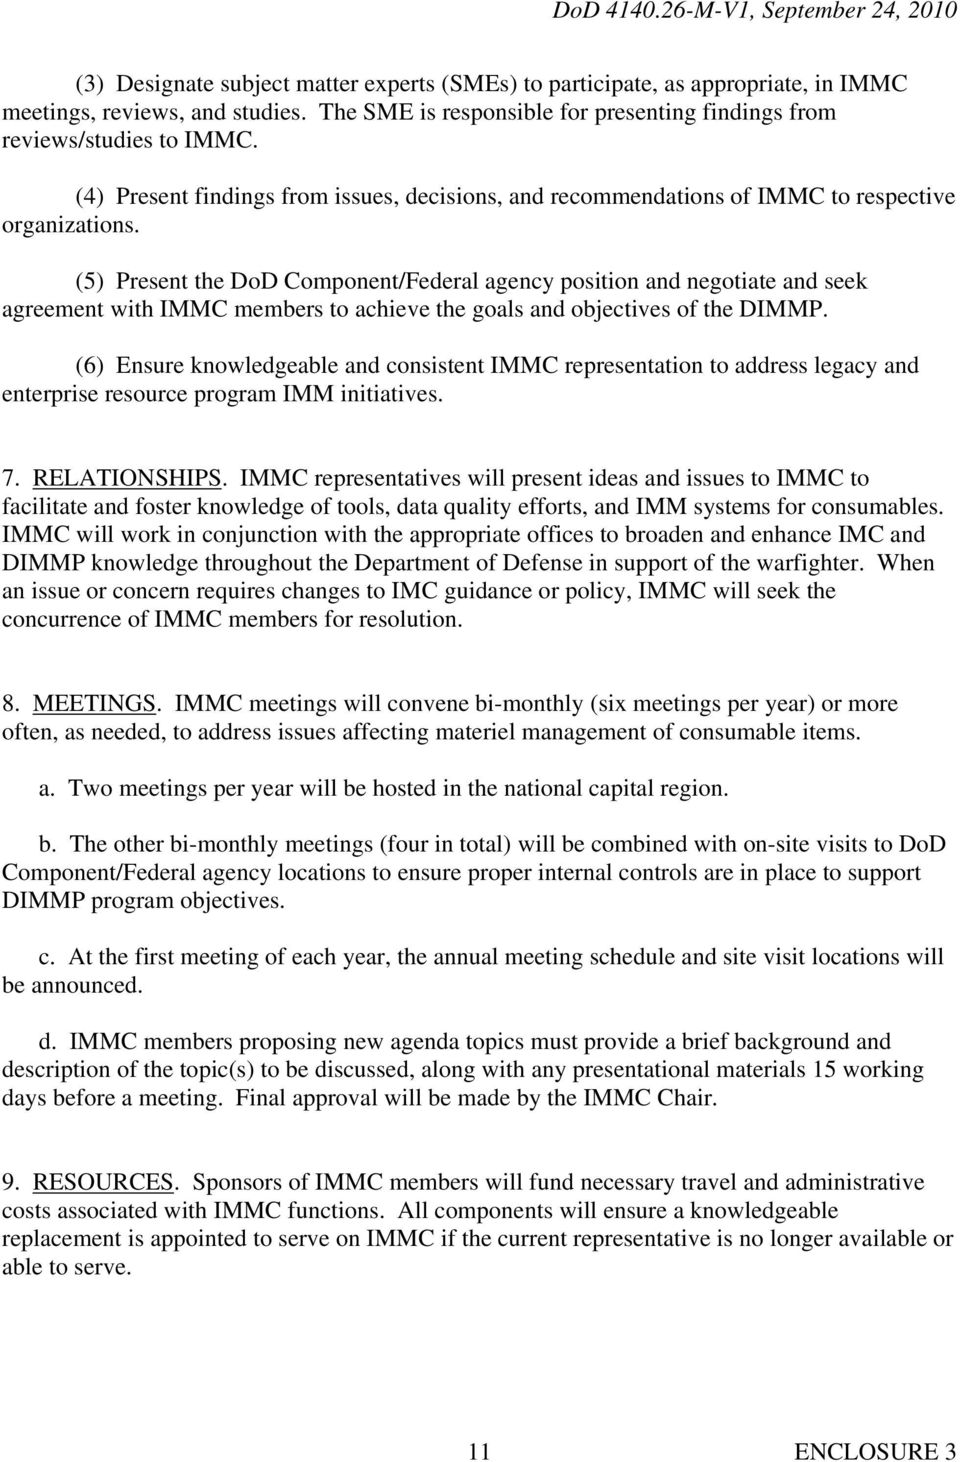 (5) Present the DoD Component/Federal agency position and negotiate and seek agreement with IMMC members to achieve the goals and objectives of the DIMMP.